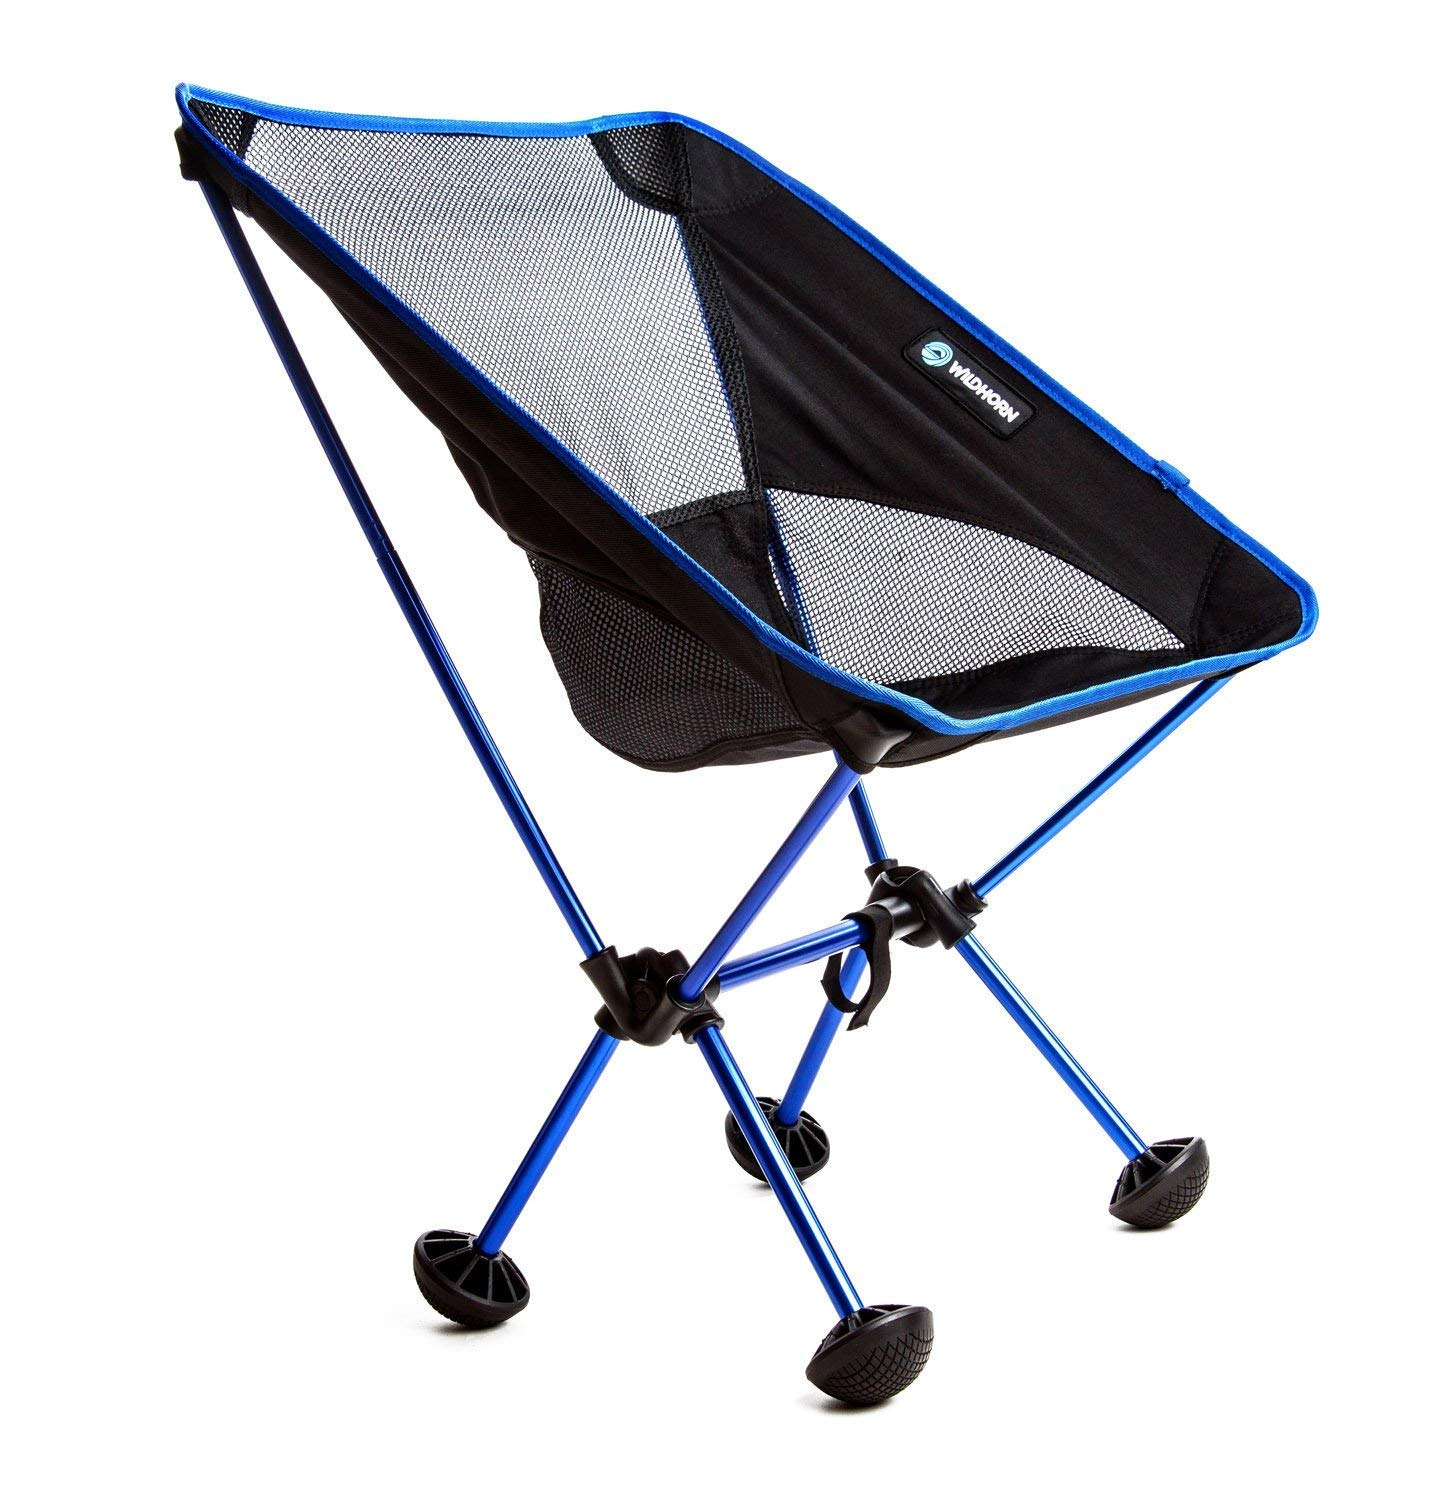 Terralite Portable Camp / Beach Chair Perfect For Beach, Camping, Backpacking, & Outdoor Festivals. Compact & Heavy Duty (Supports 350 lbs). Includes TerraGrip Feet- Won't Sink In the Sand or Mud. WildHorn Outfitters